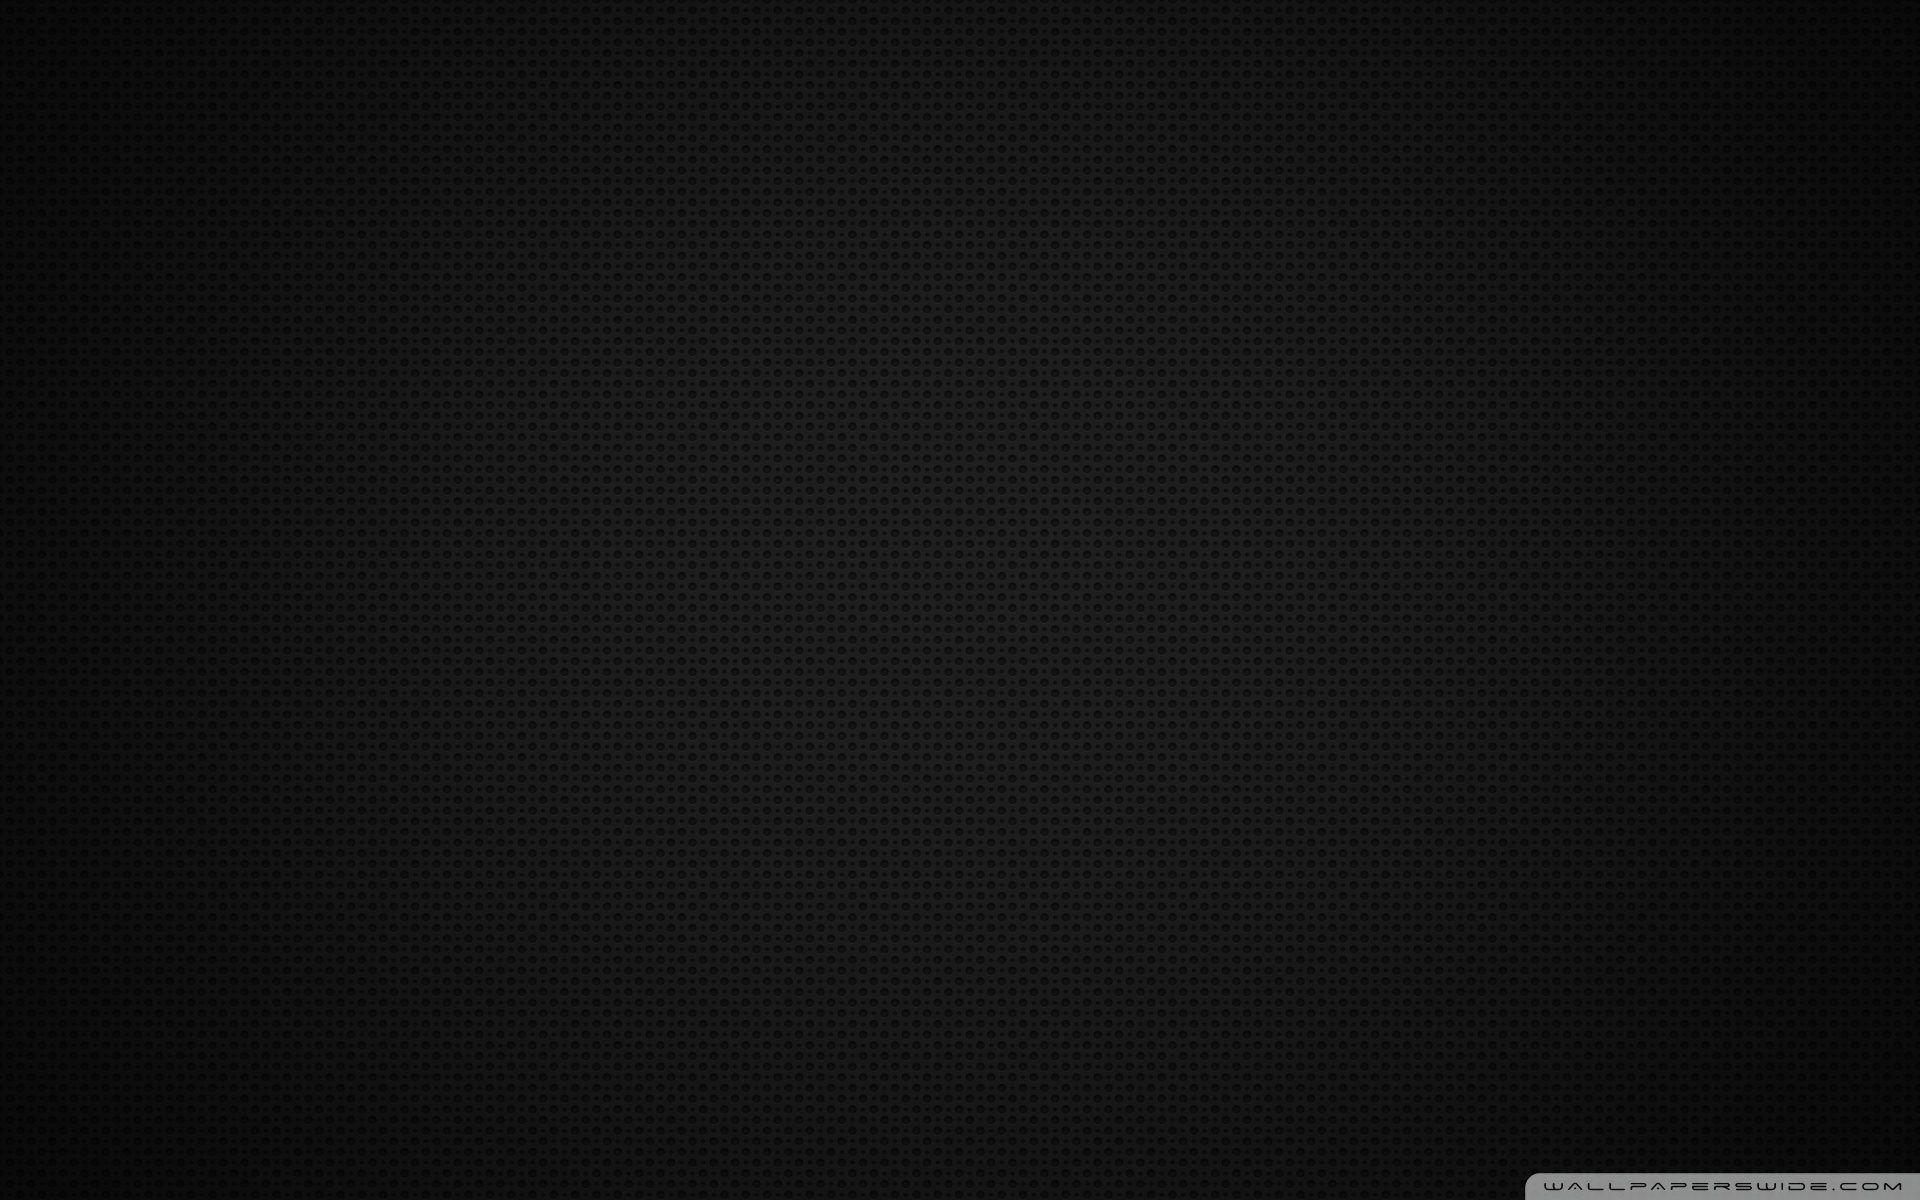 Pure Black Backgrounds Wallpapers - Wallpaper Cave